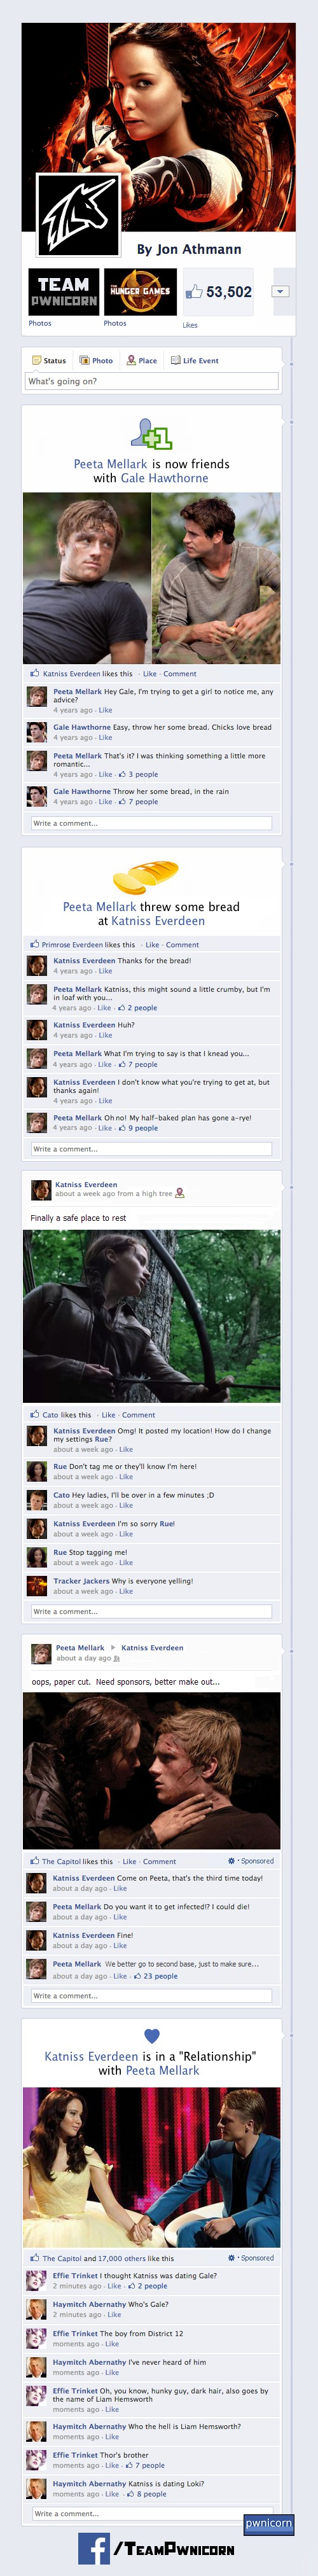 Vamers - Humour - What if the Characters from The Hunger Games had Facebook - Full